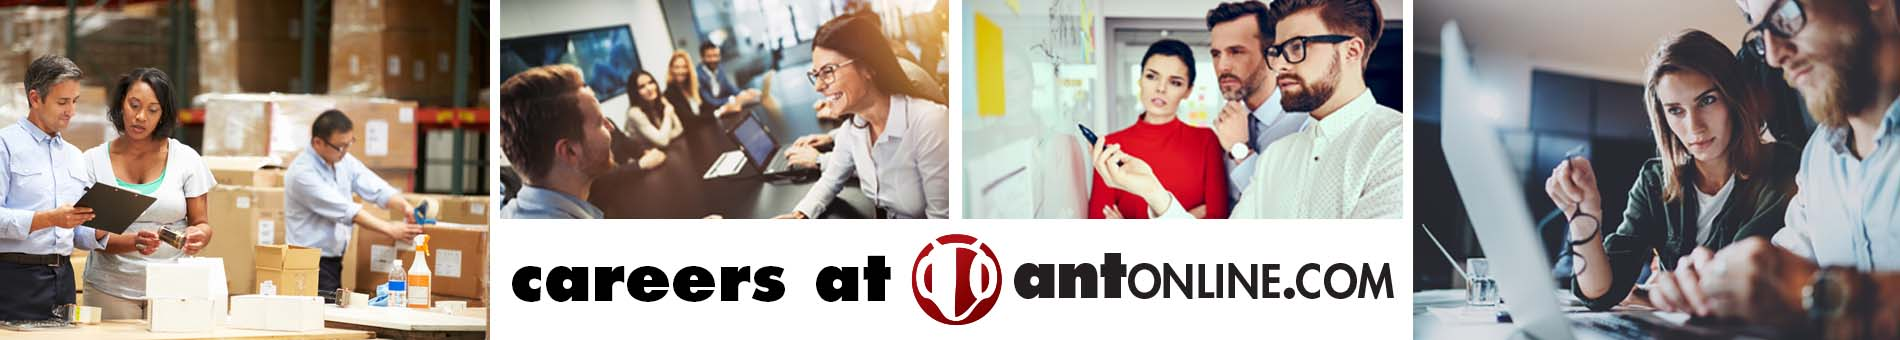 careers at antonline